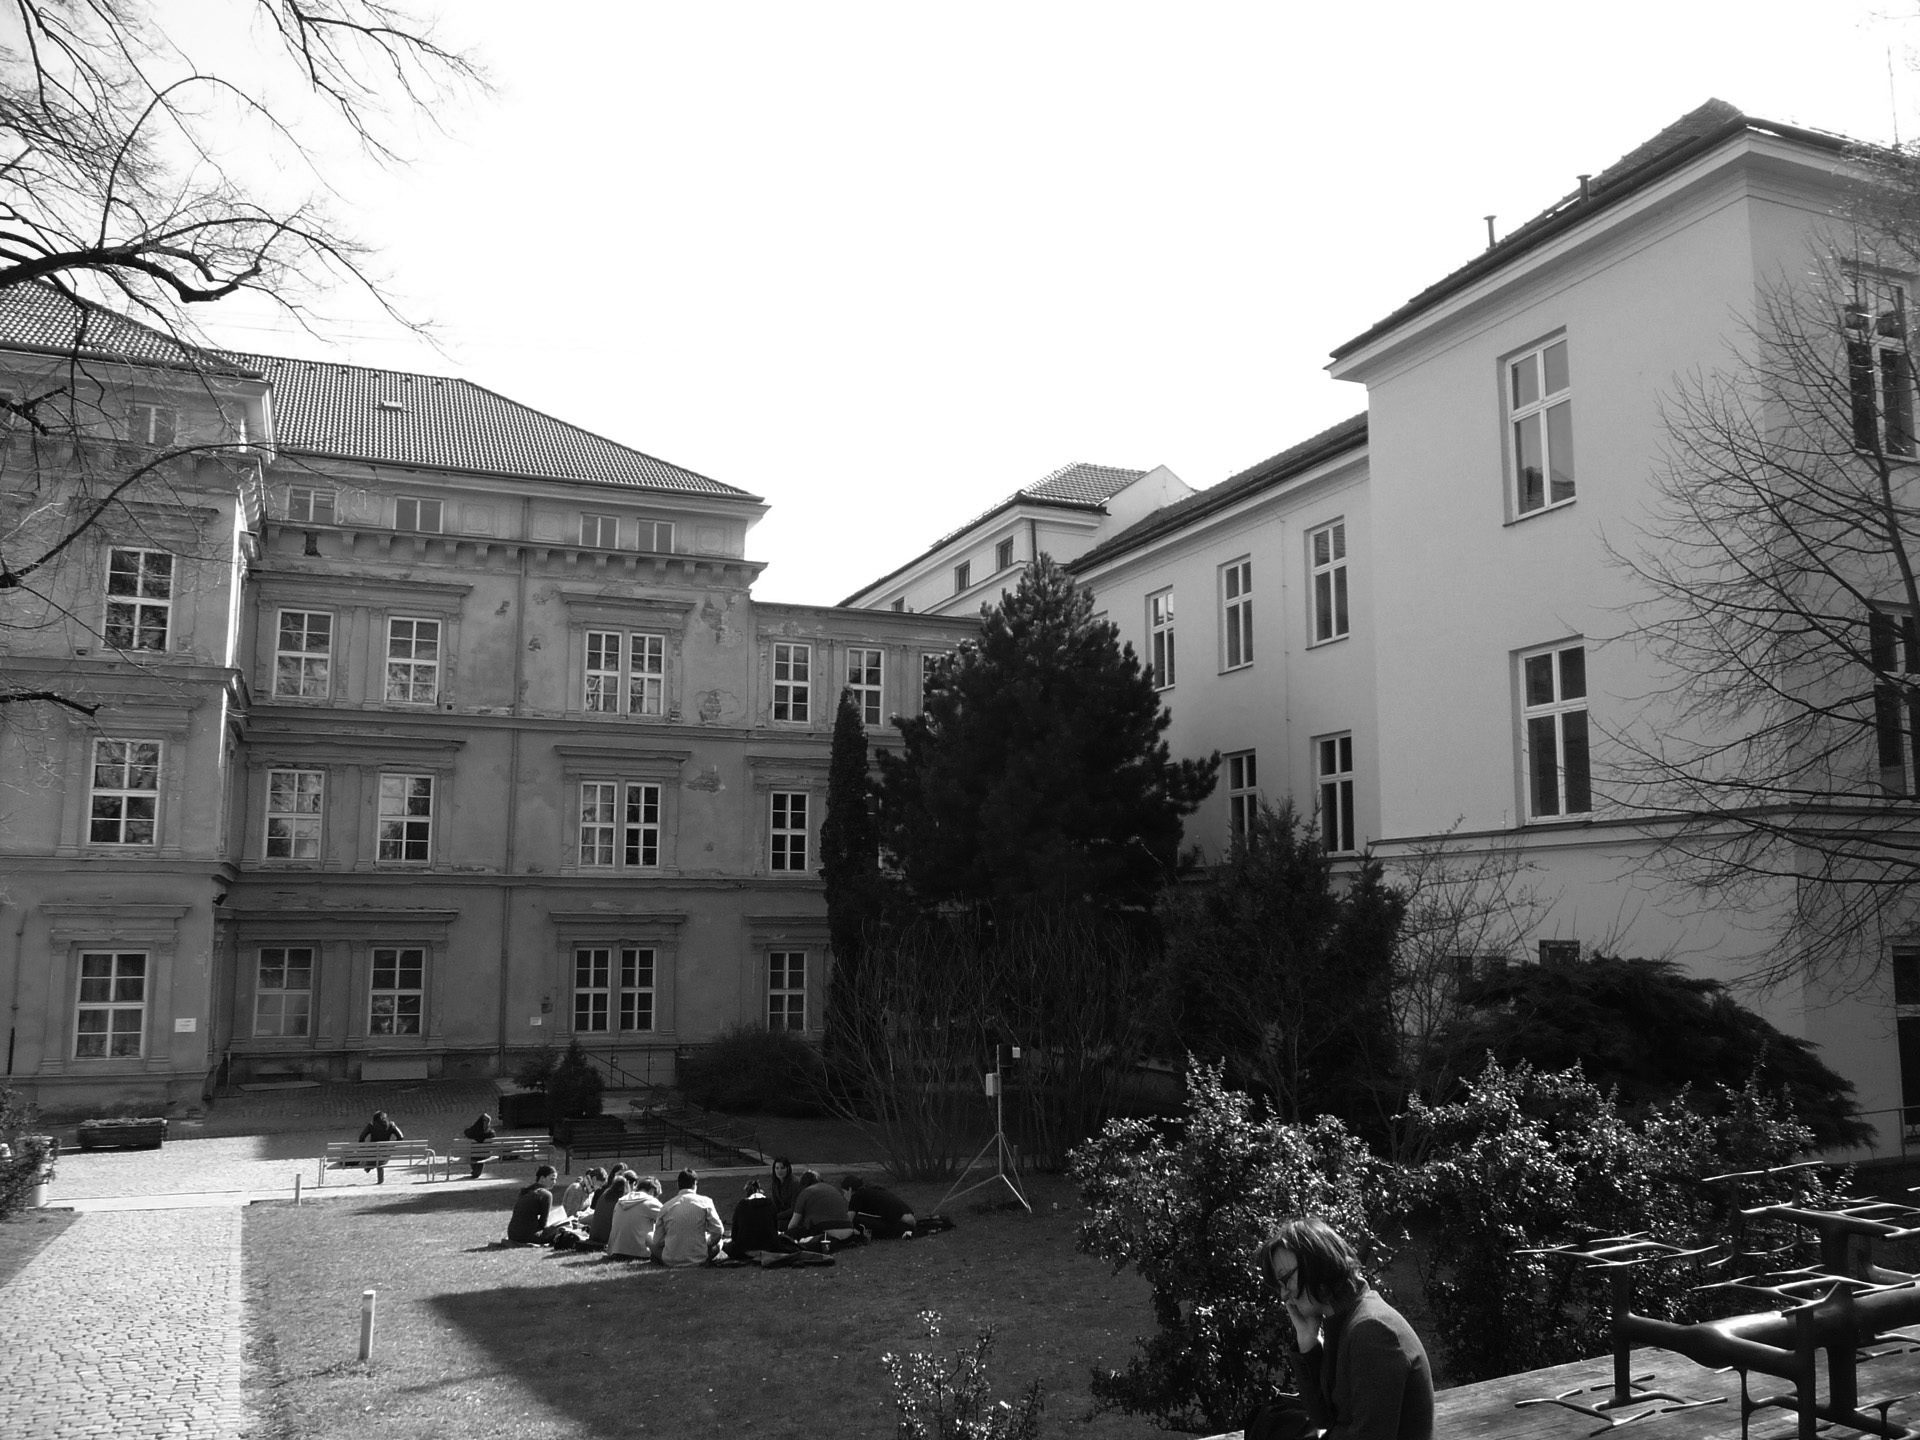 The Faculty of Arts of Masaryk University in Brno